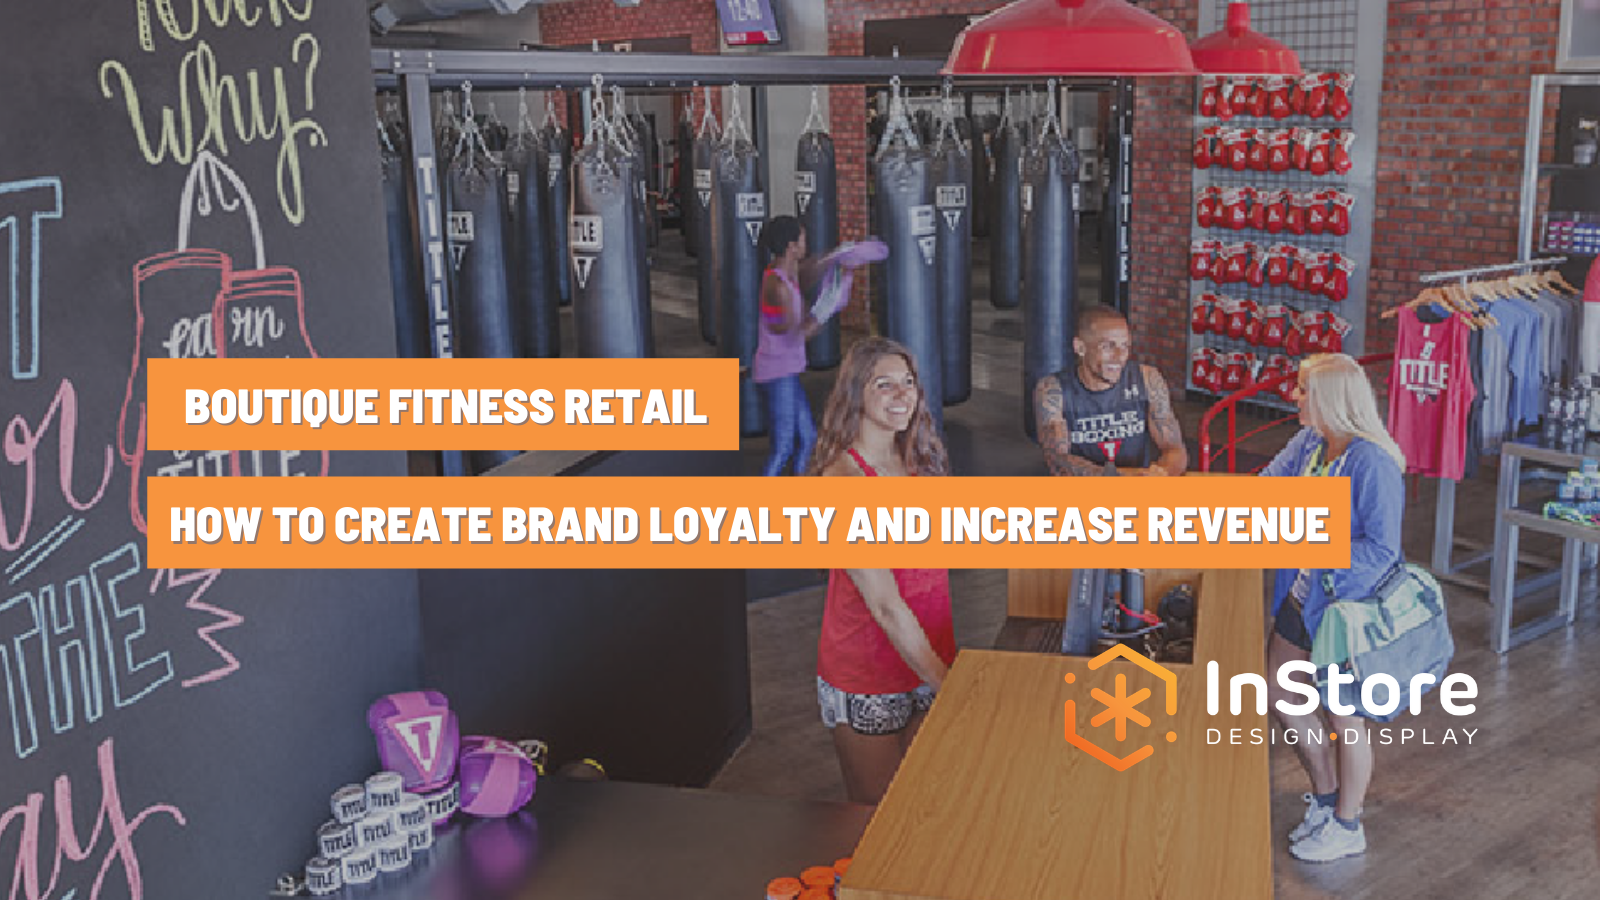 Why Boutique Fitness Is The Next Big Retail Opportunity